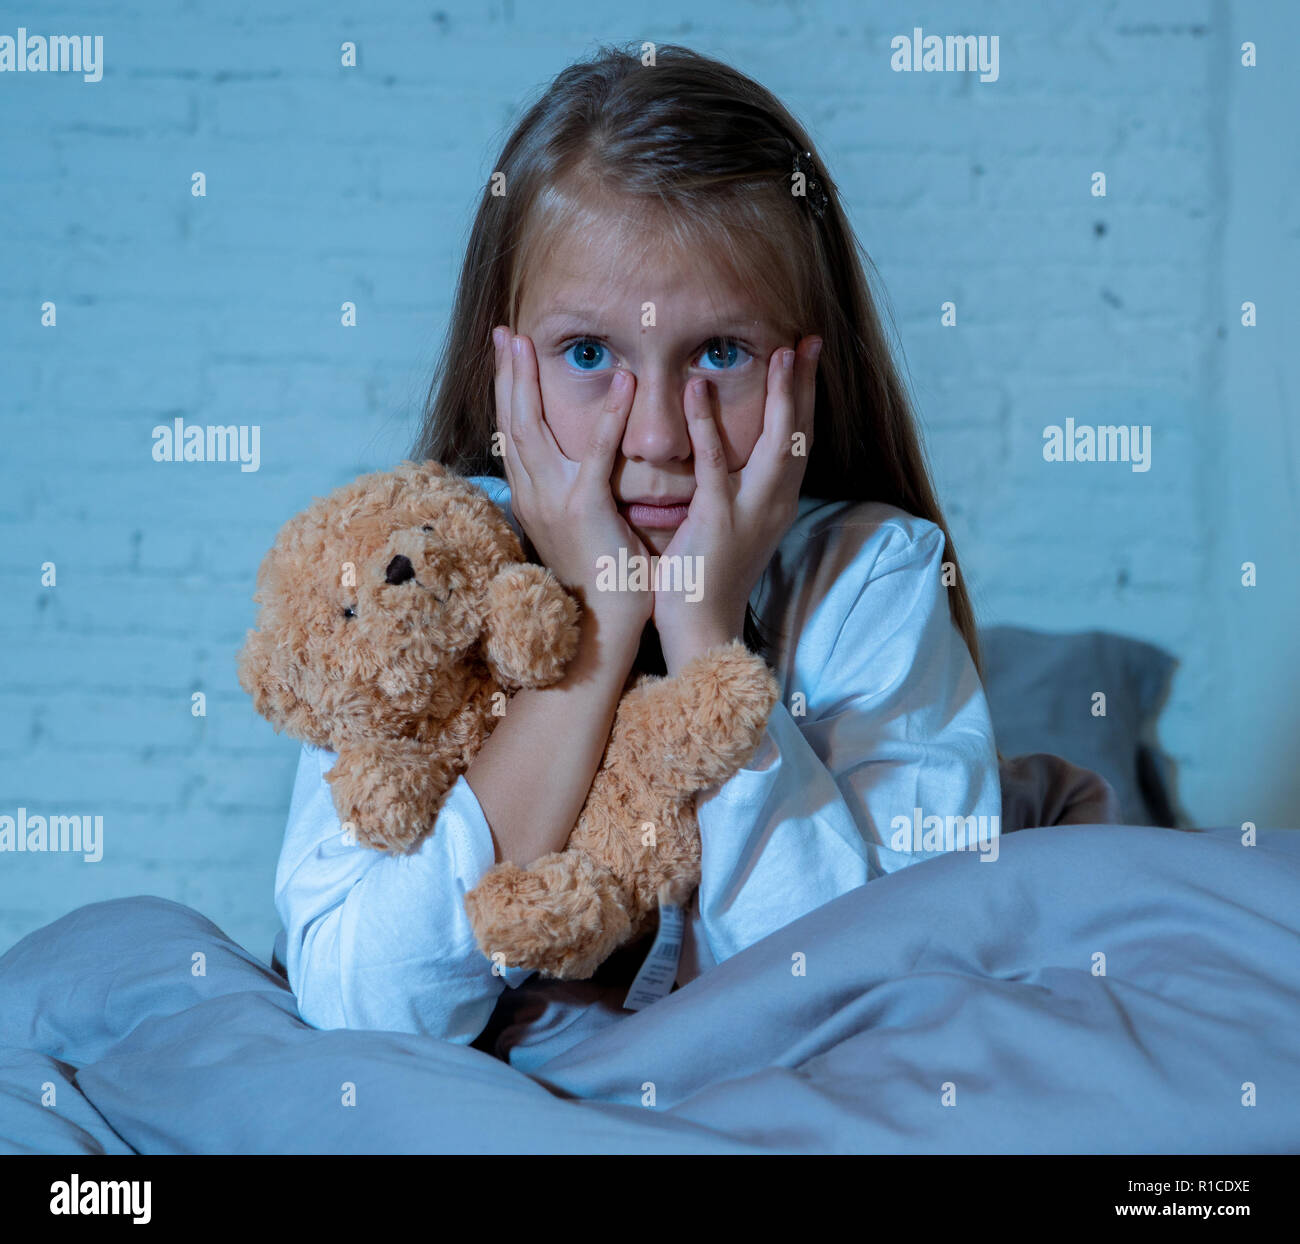 Scared little girl sitting in bed covering her face with hands holding her teddy in fear afraid of monsters in darkness in bedroom in Child nightmares - Stock Image